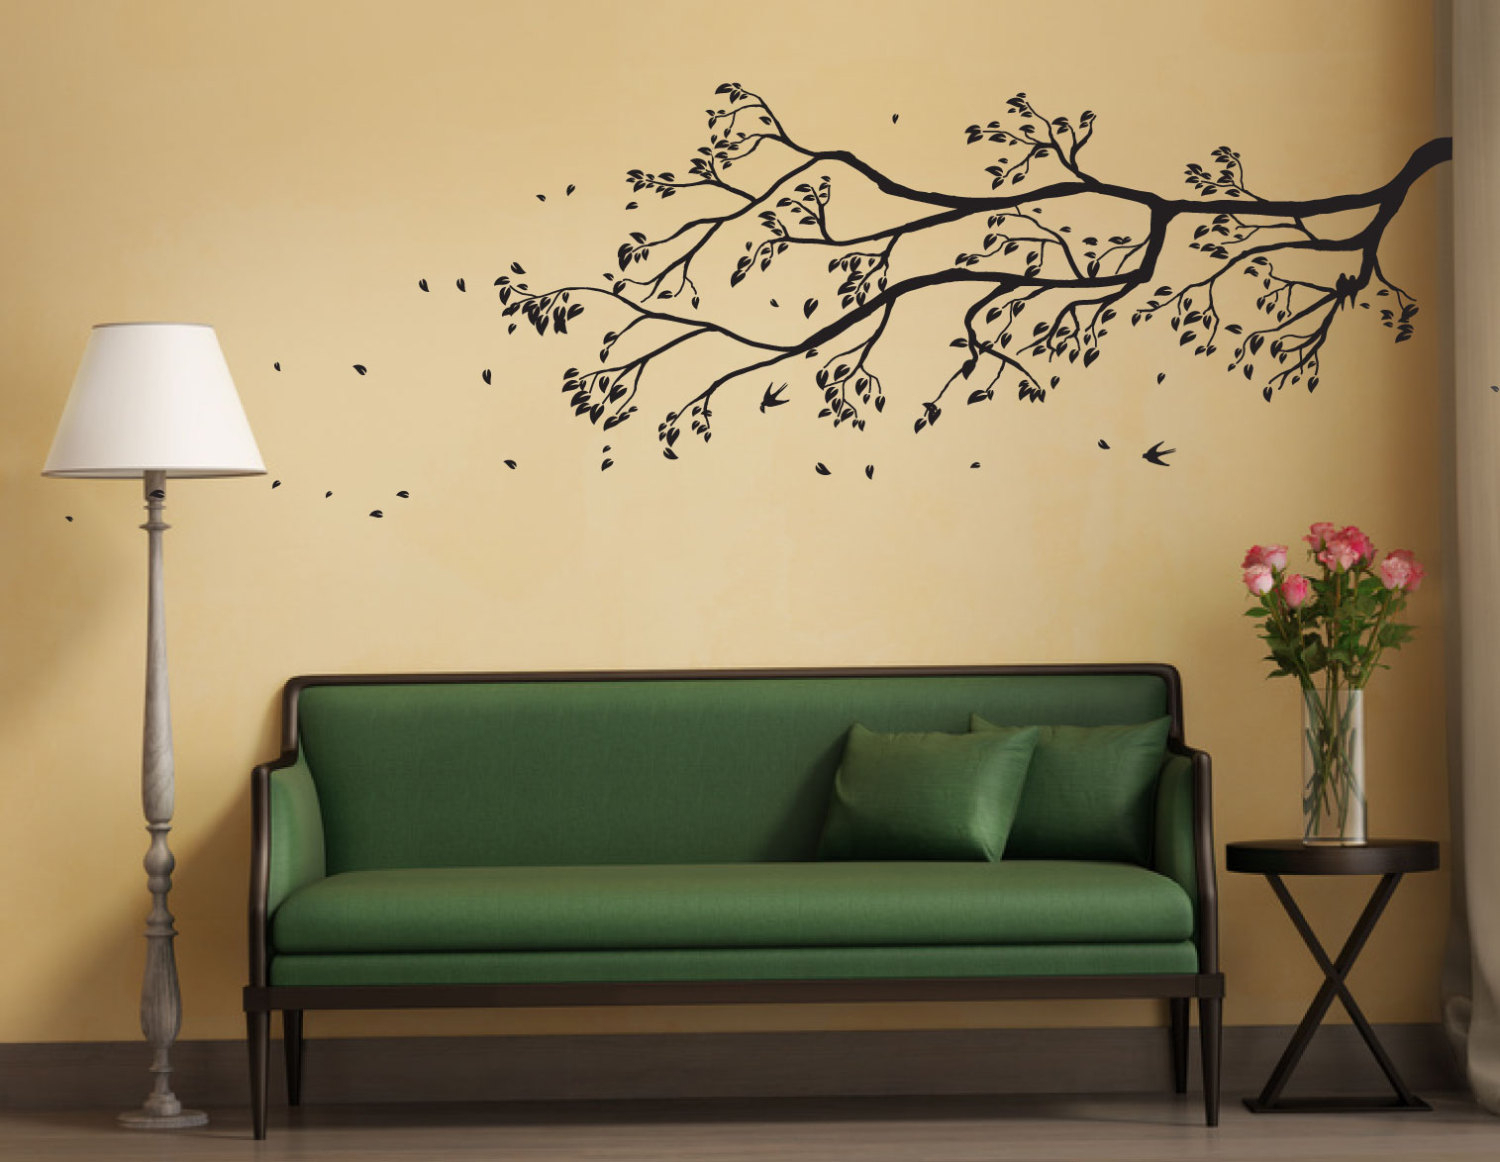 Tree Branch Wall Sticker With Falling Leaves And Birds Perched | Removable  Wall Decal Home Decor Wall Art Decal inside Flowing Leaves Wall Decor (Image 29 of 30)